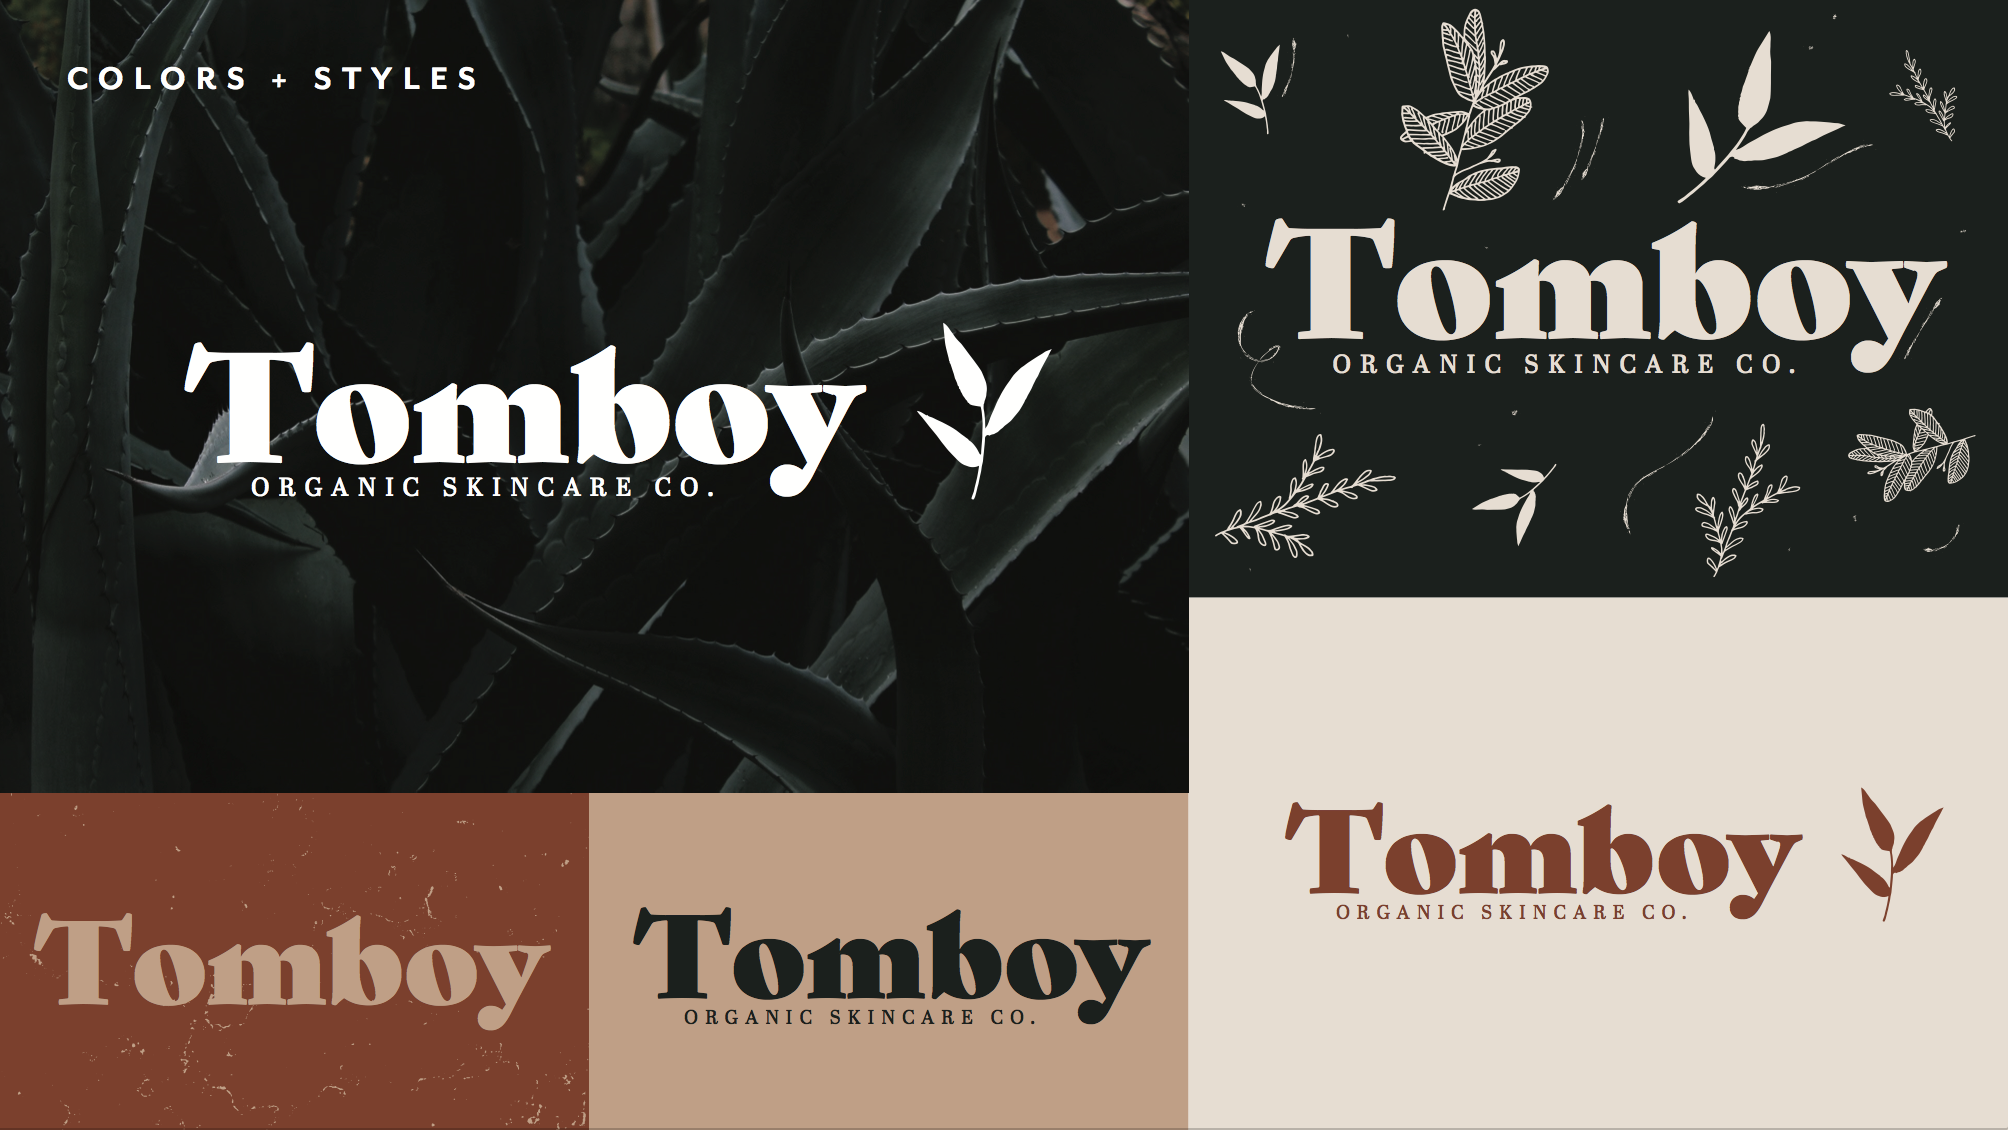 Tomboy's logo, after Brand Therapy